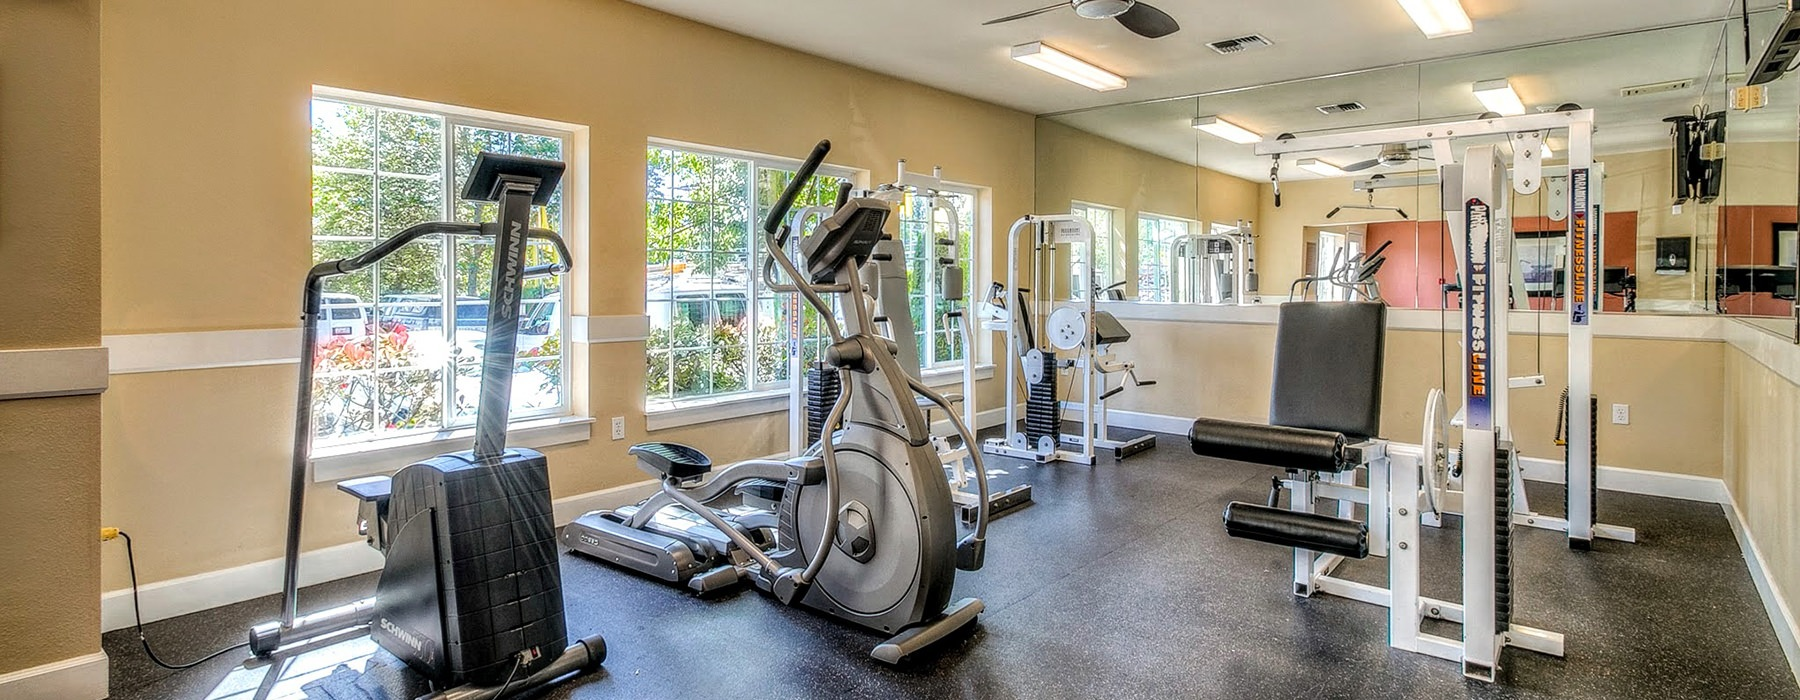 fitness center with large windows